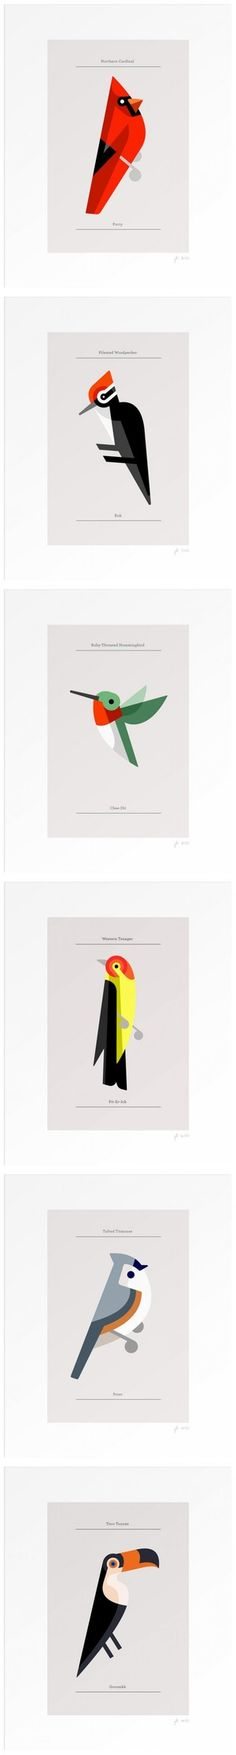 Here birdy birdy. Kudos to @Josh Brill for his designs...